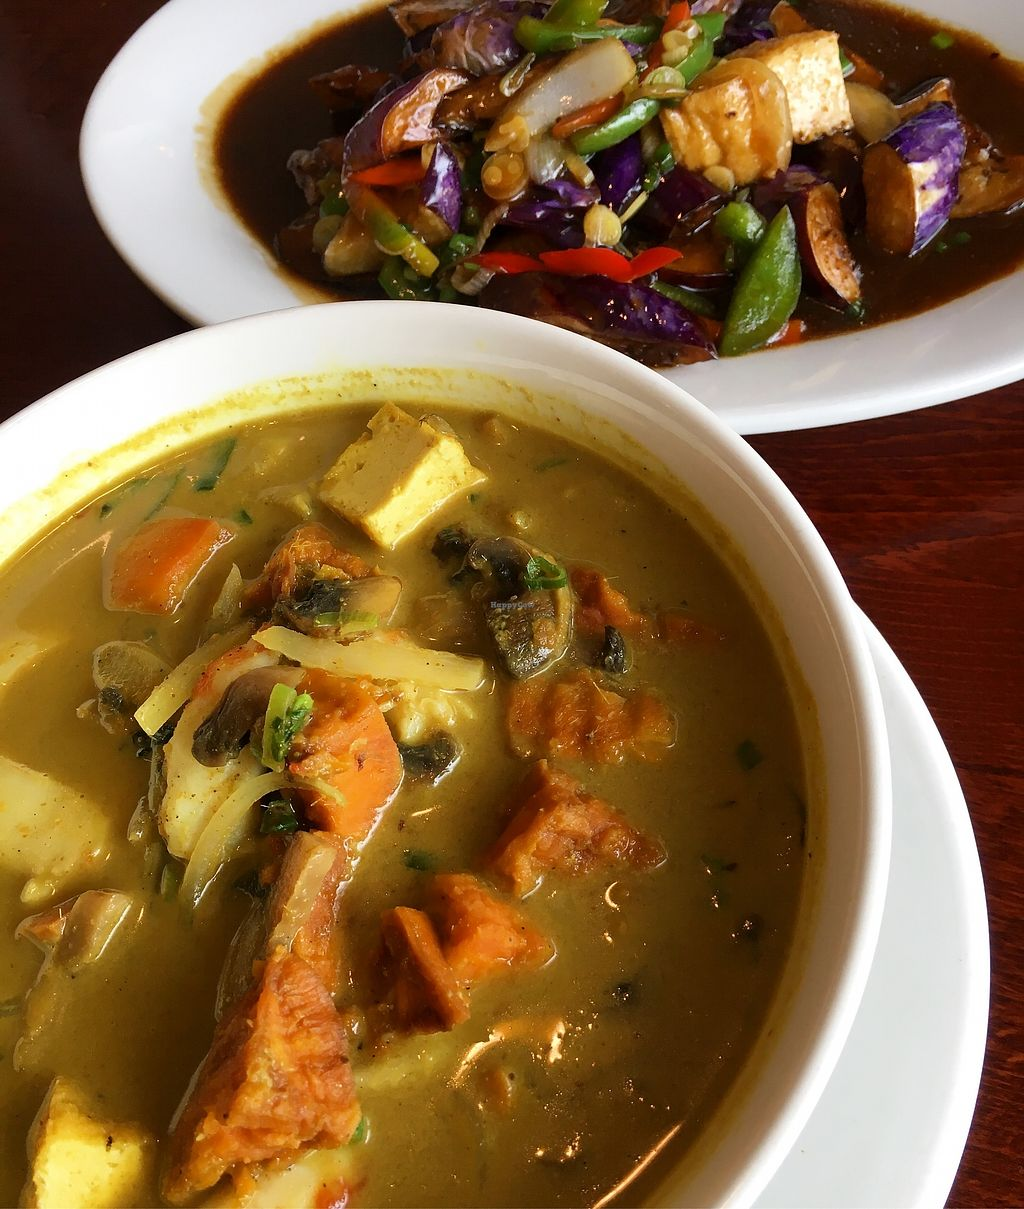 """Photo of Vegan Kitchen  by <a href=""""/members/profile/sousuneautrelentille"""">sousuneautrelentille</a> <br/>Eggplant stir fry (top) and sweet potato curry (bottom) <br/> March 5, 2018  - <a href='/contact/abuse/image/21811/366910'>Report</a>"""